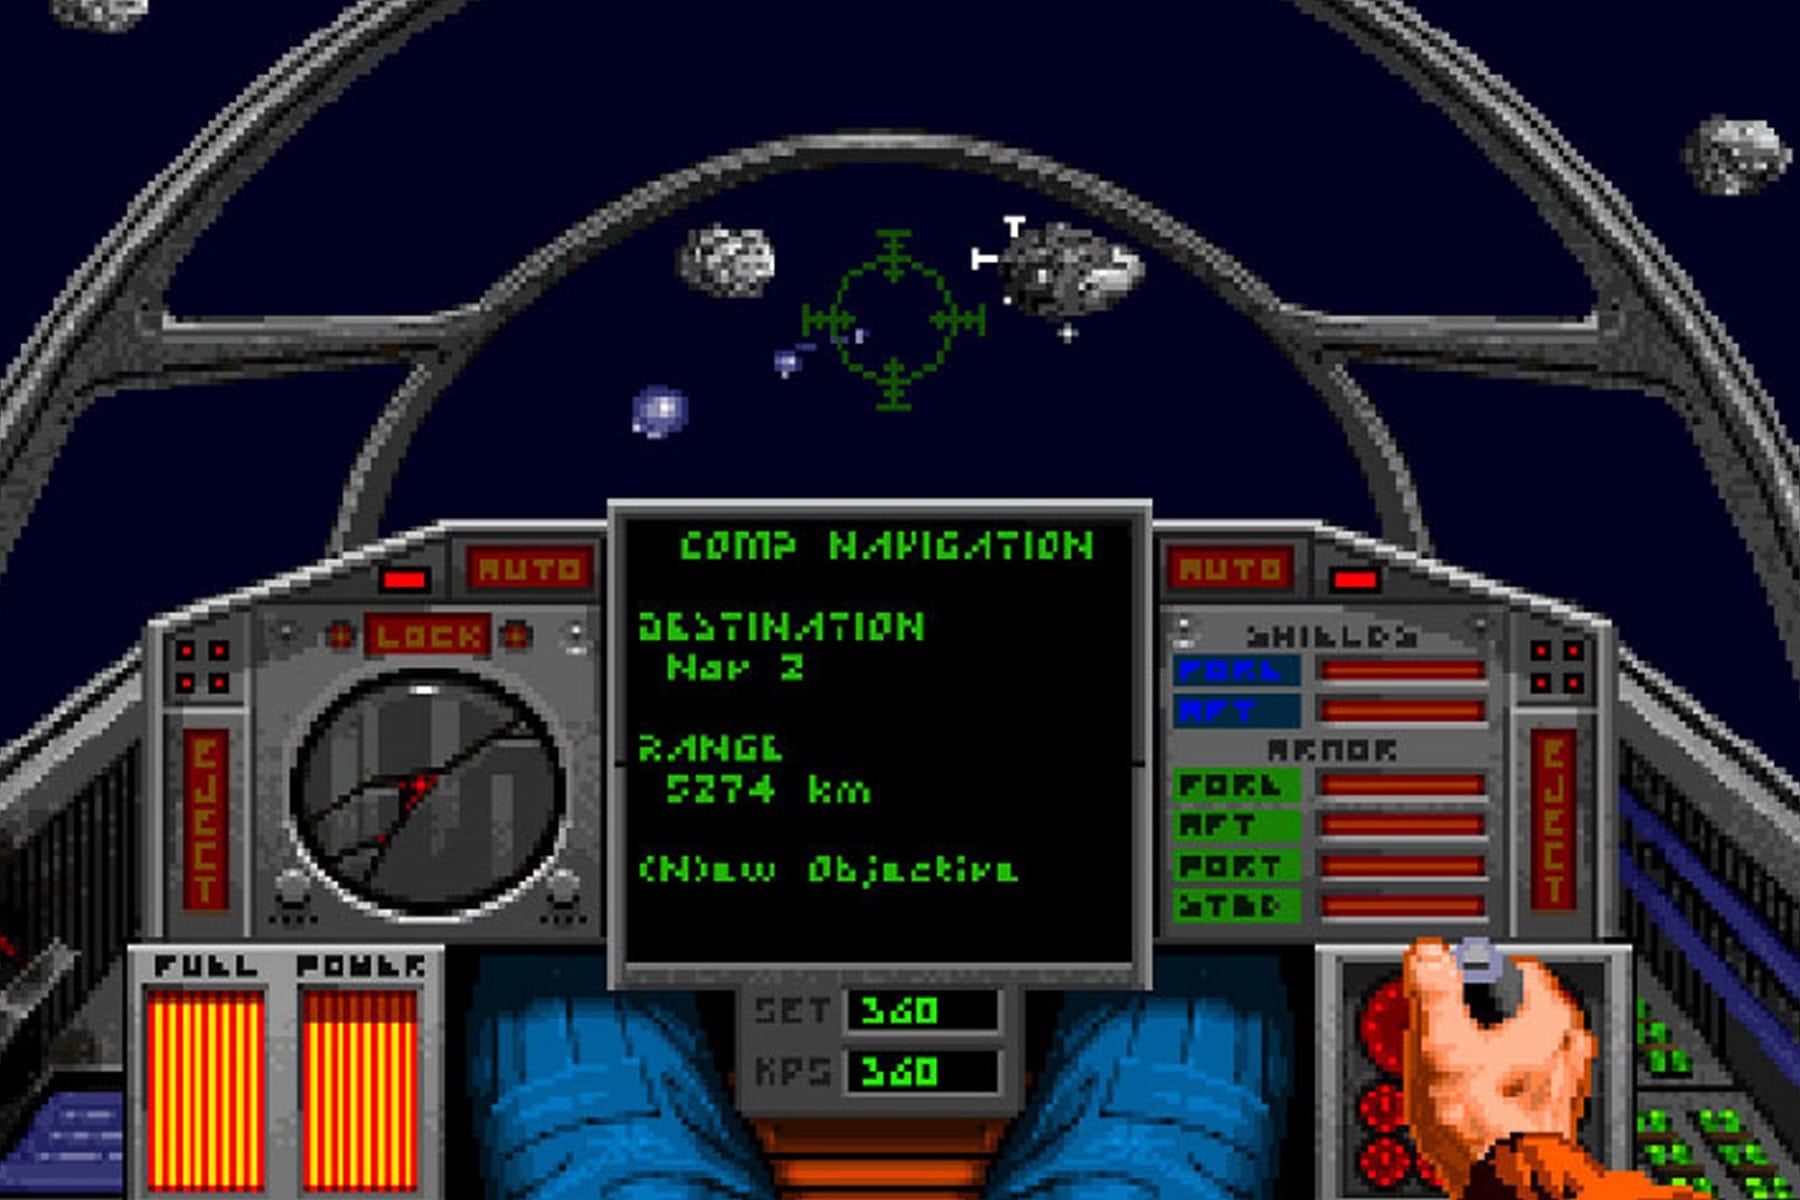 Screenshot of the cockpit in classic pc game Wing Commander 2